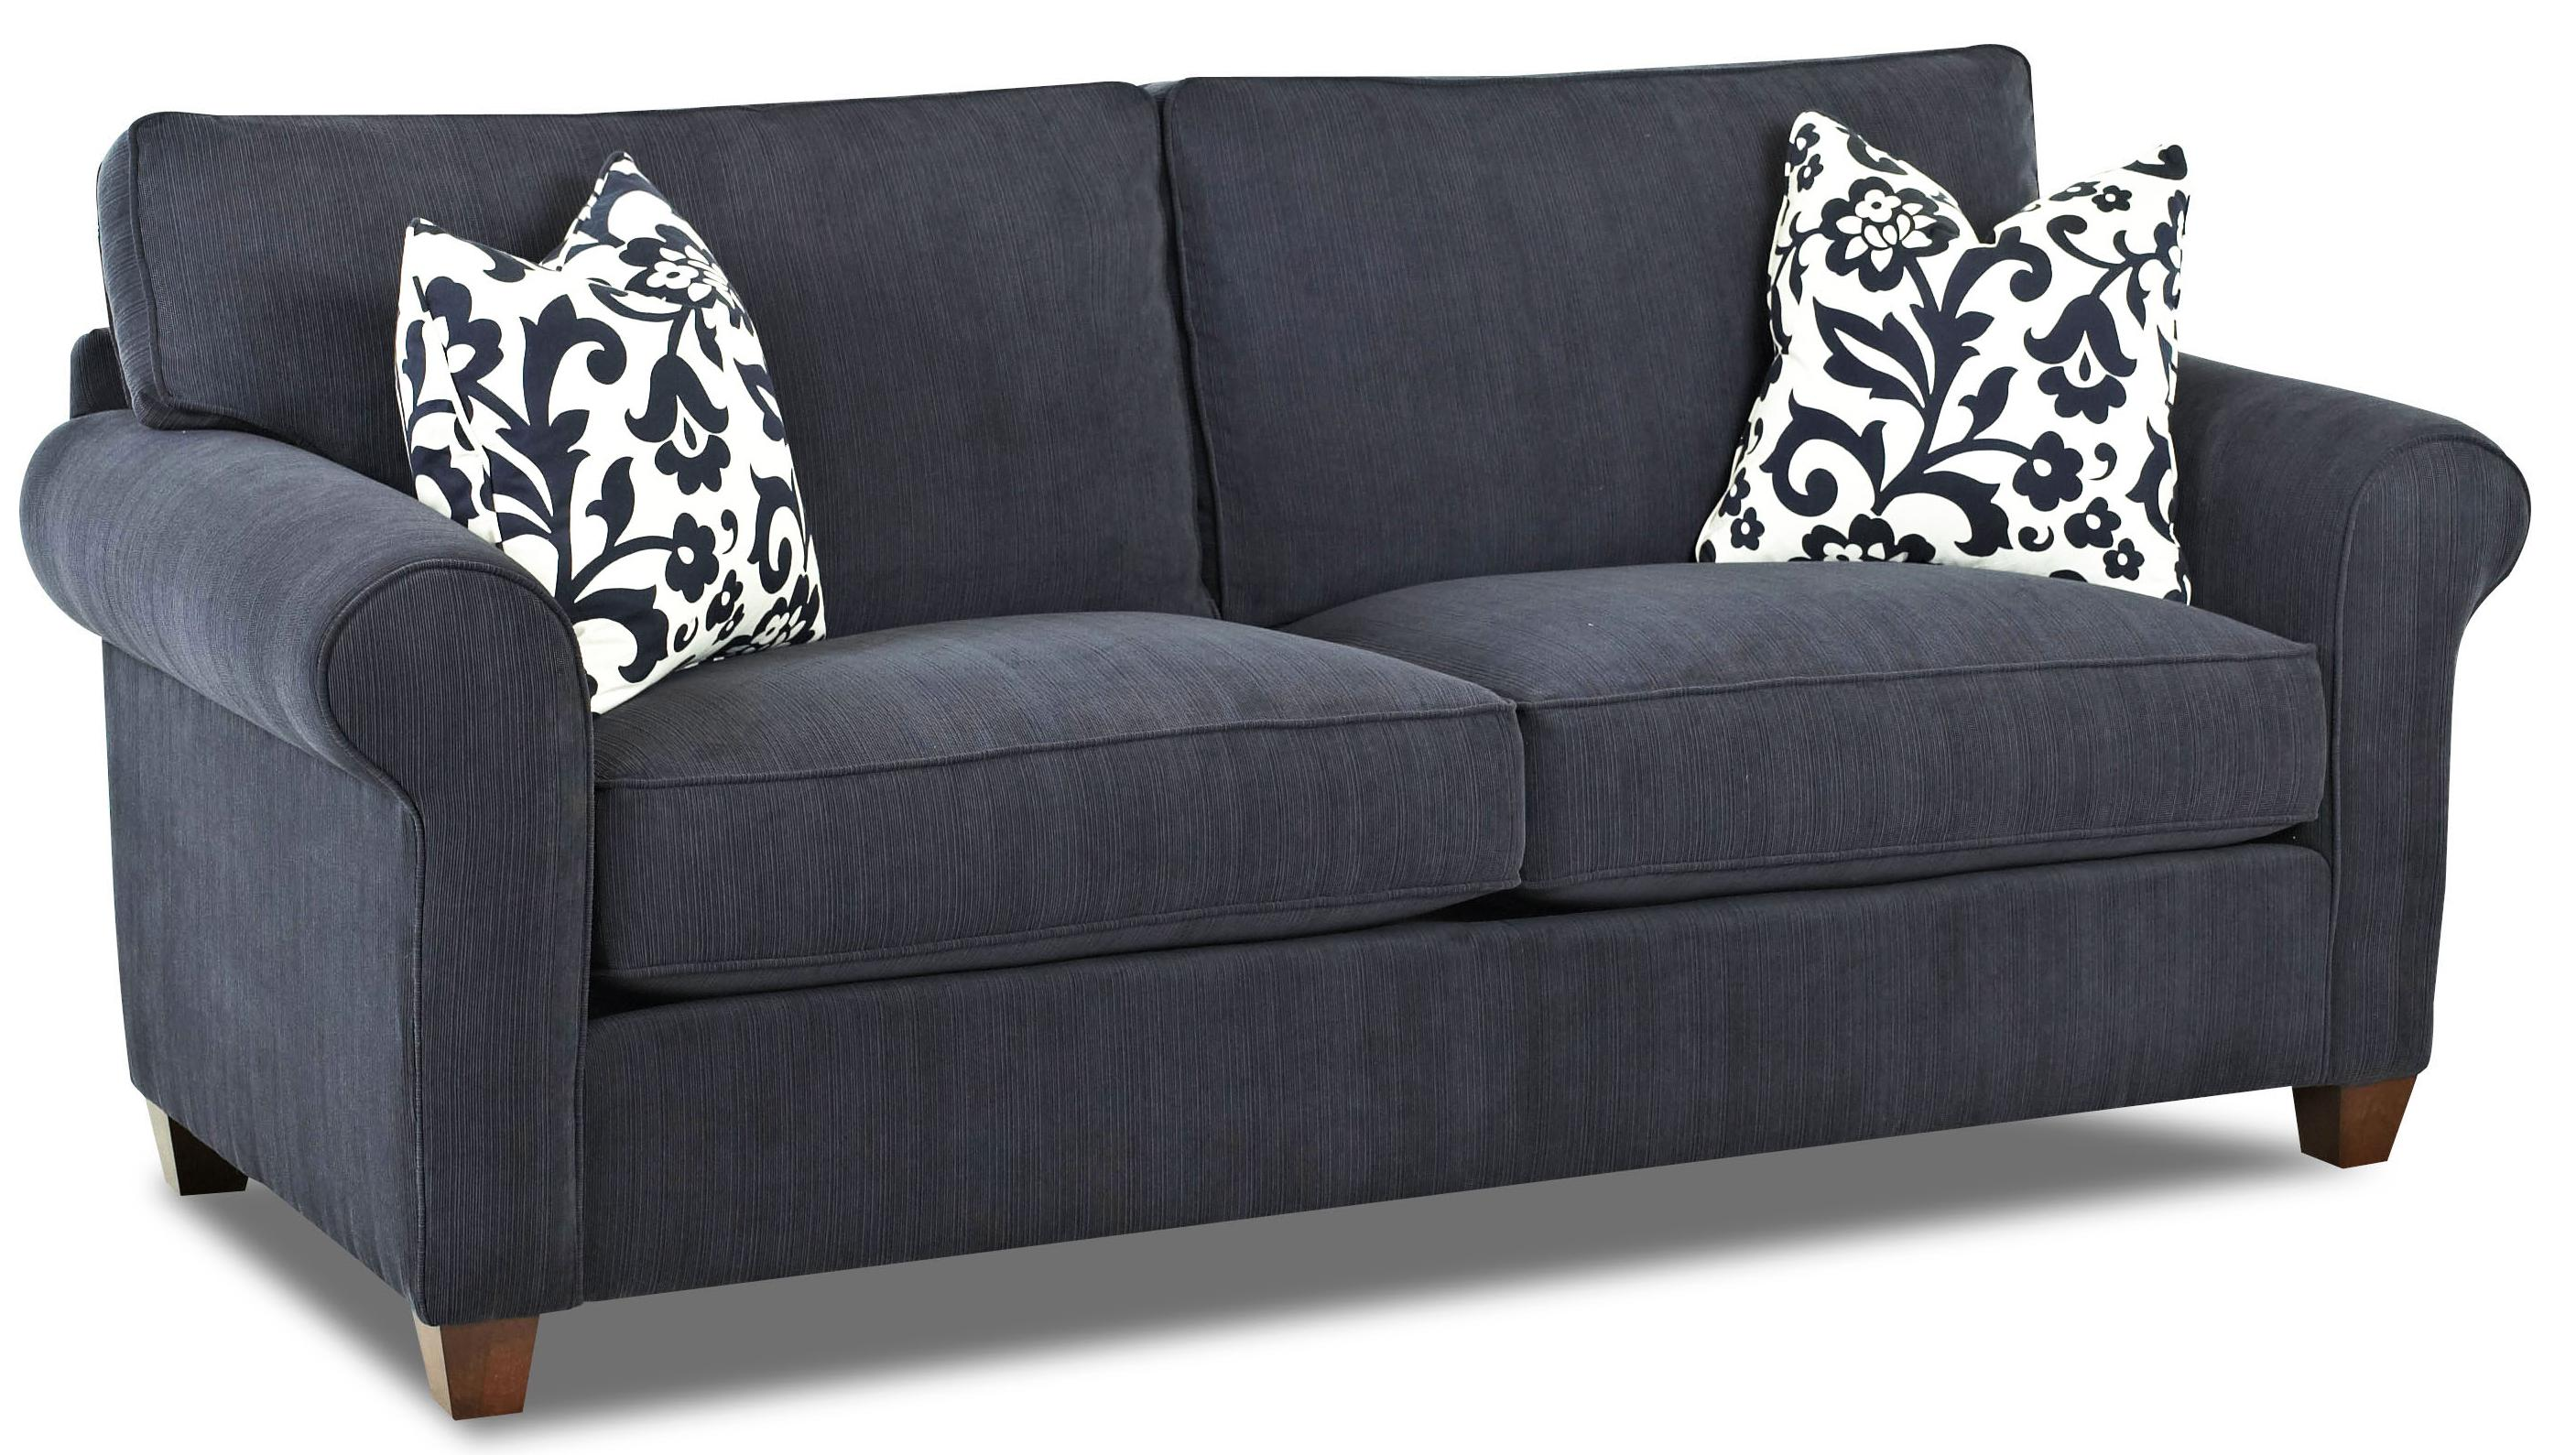 Klaussner lillington distinctions d70200 dqsl transitional for Transitional sectional sofa sleeper